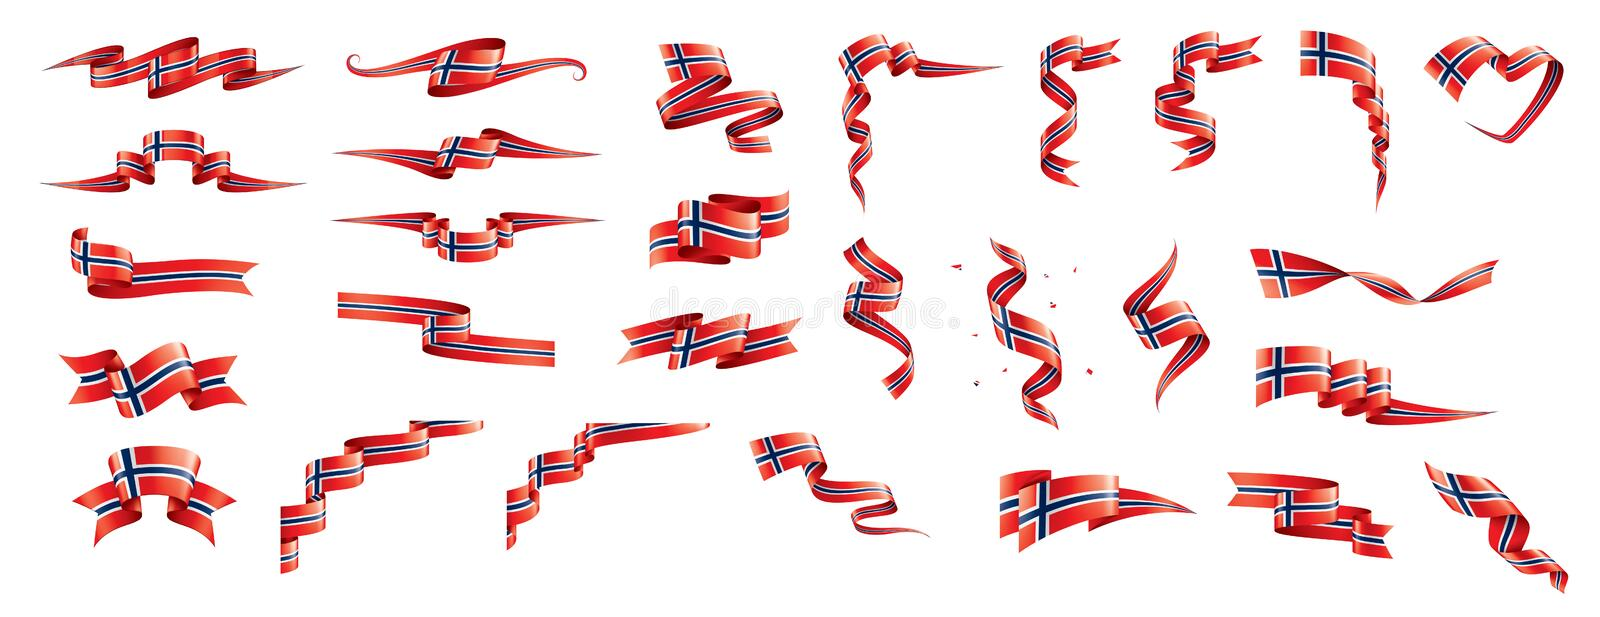 Norway flag, vector illustration on a white background royalty free illustration